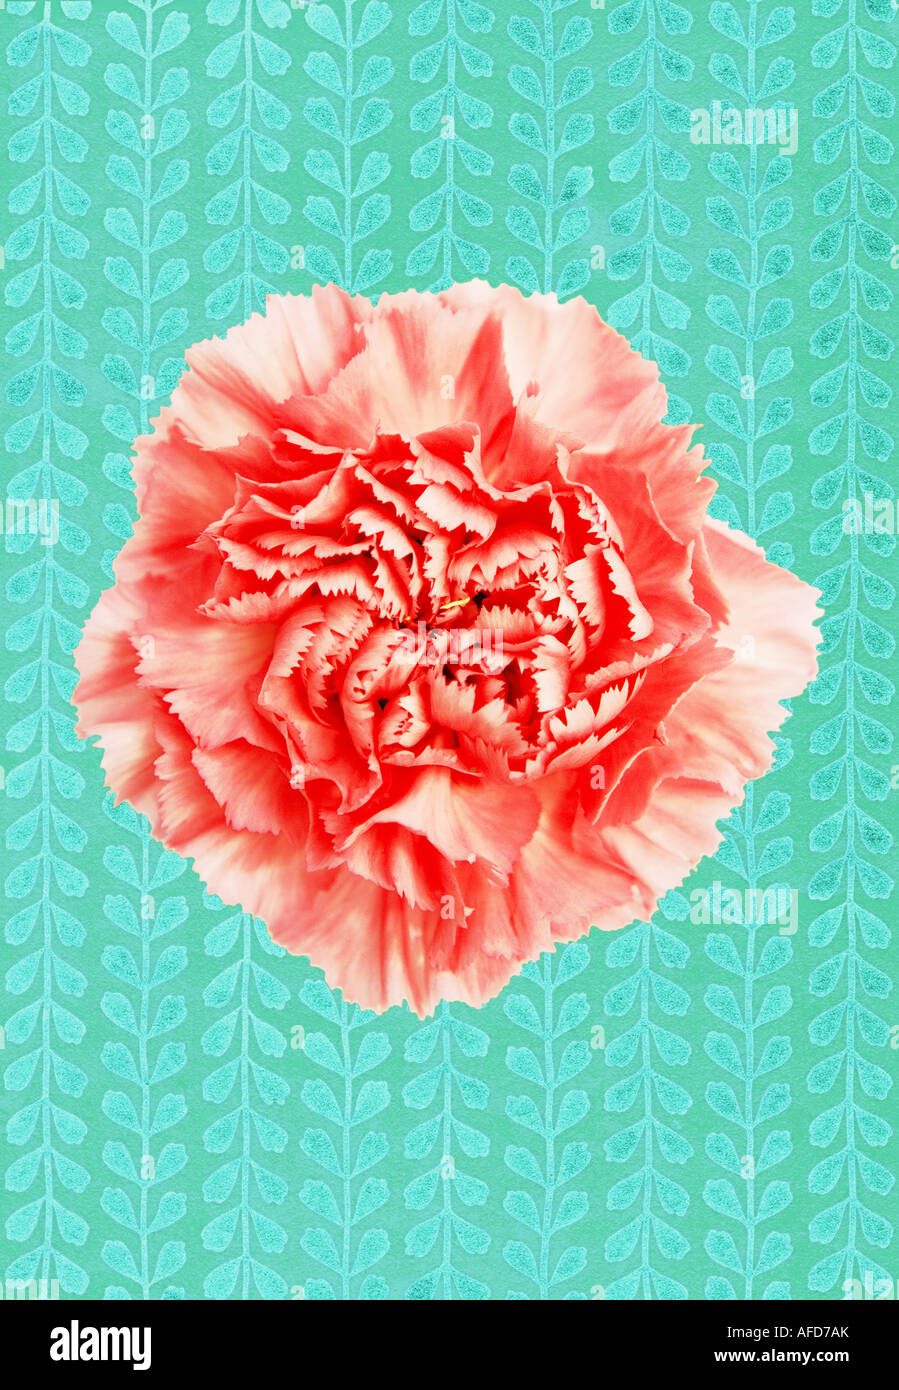 Illustration of pink carnation against a textured patterned background - Stock Image